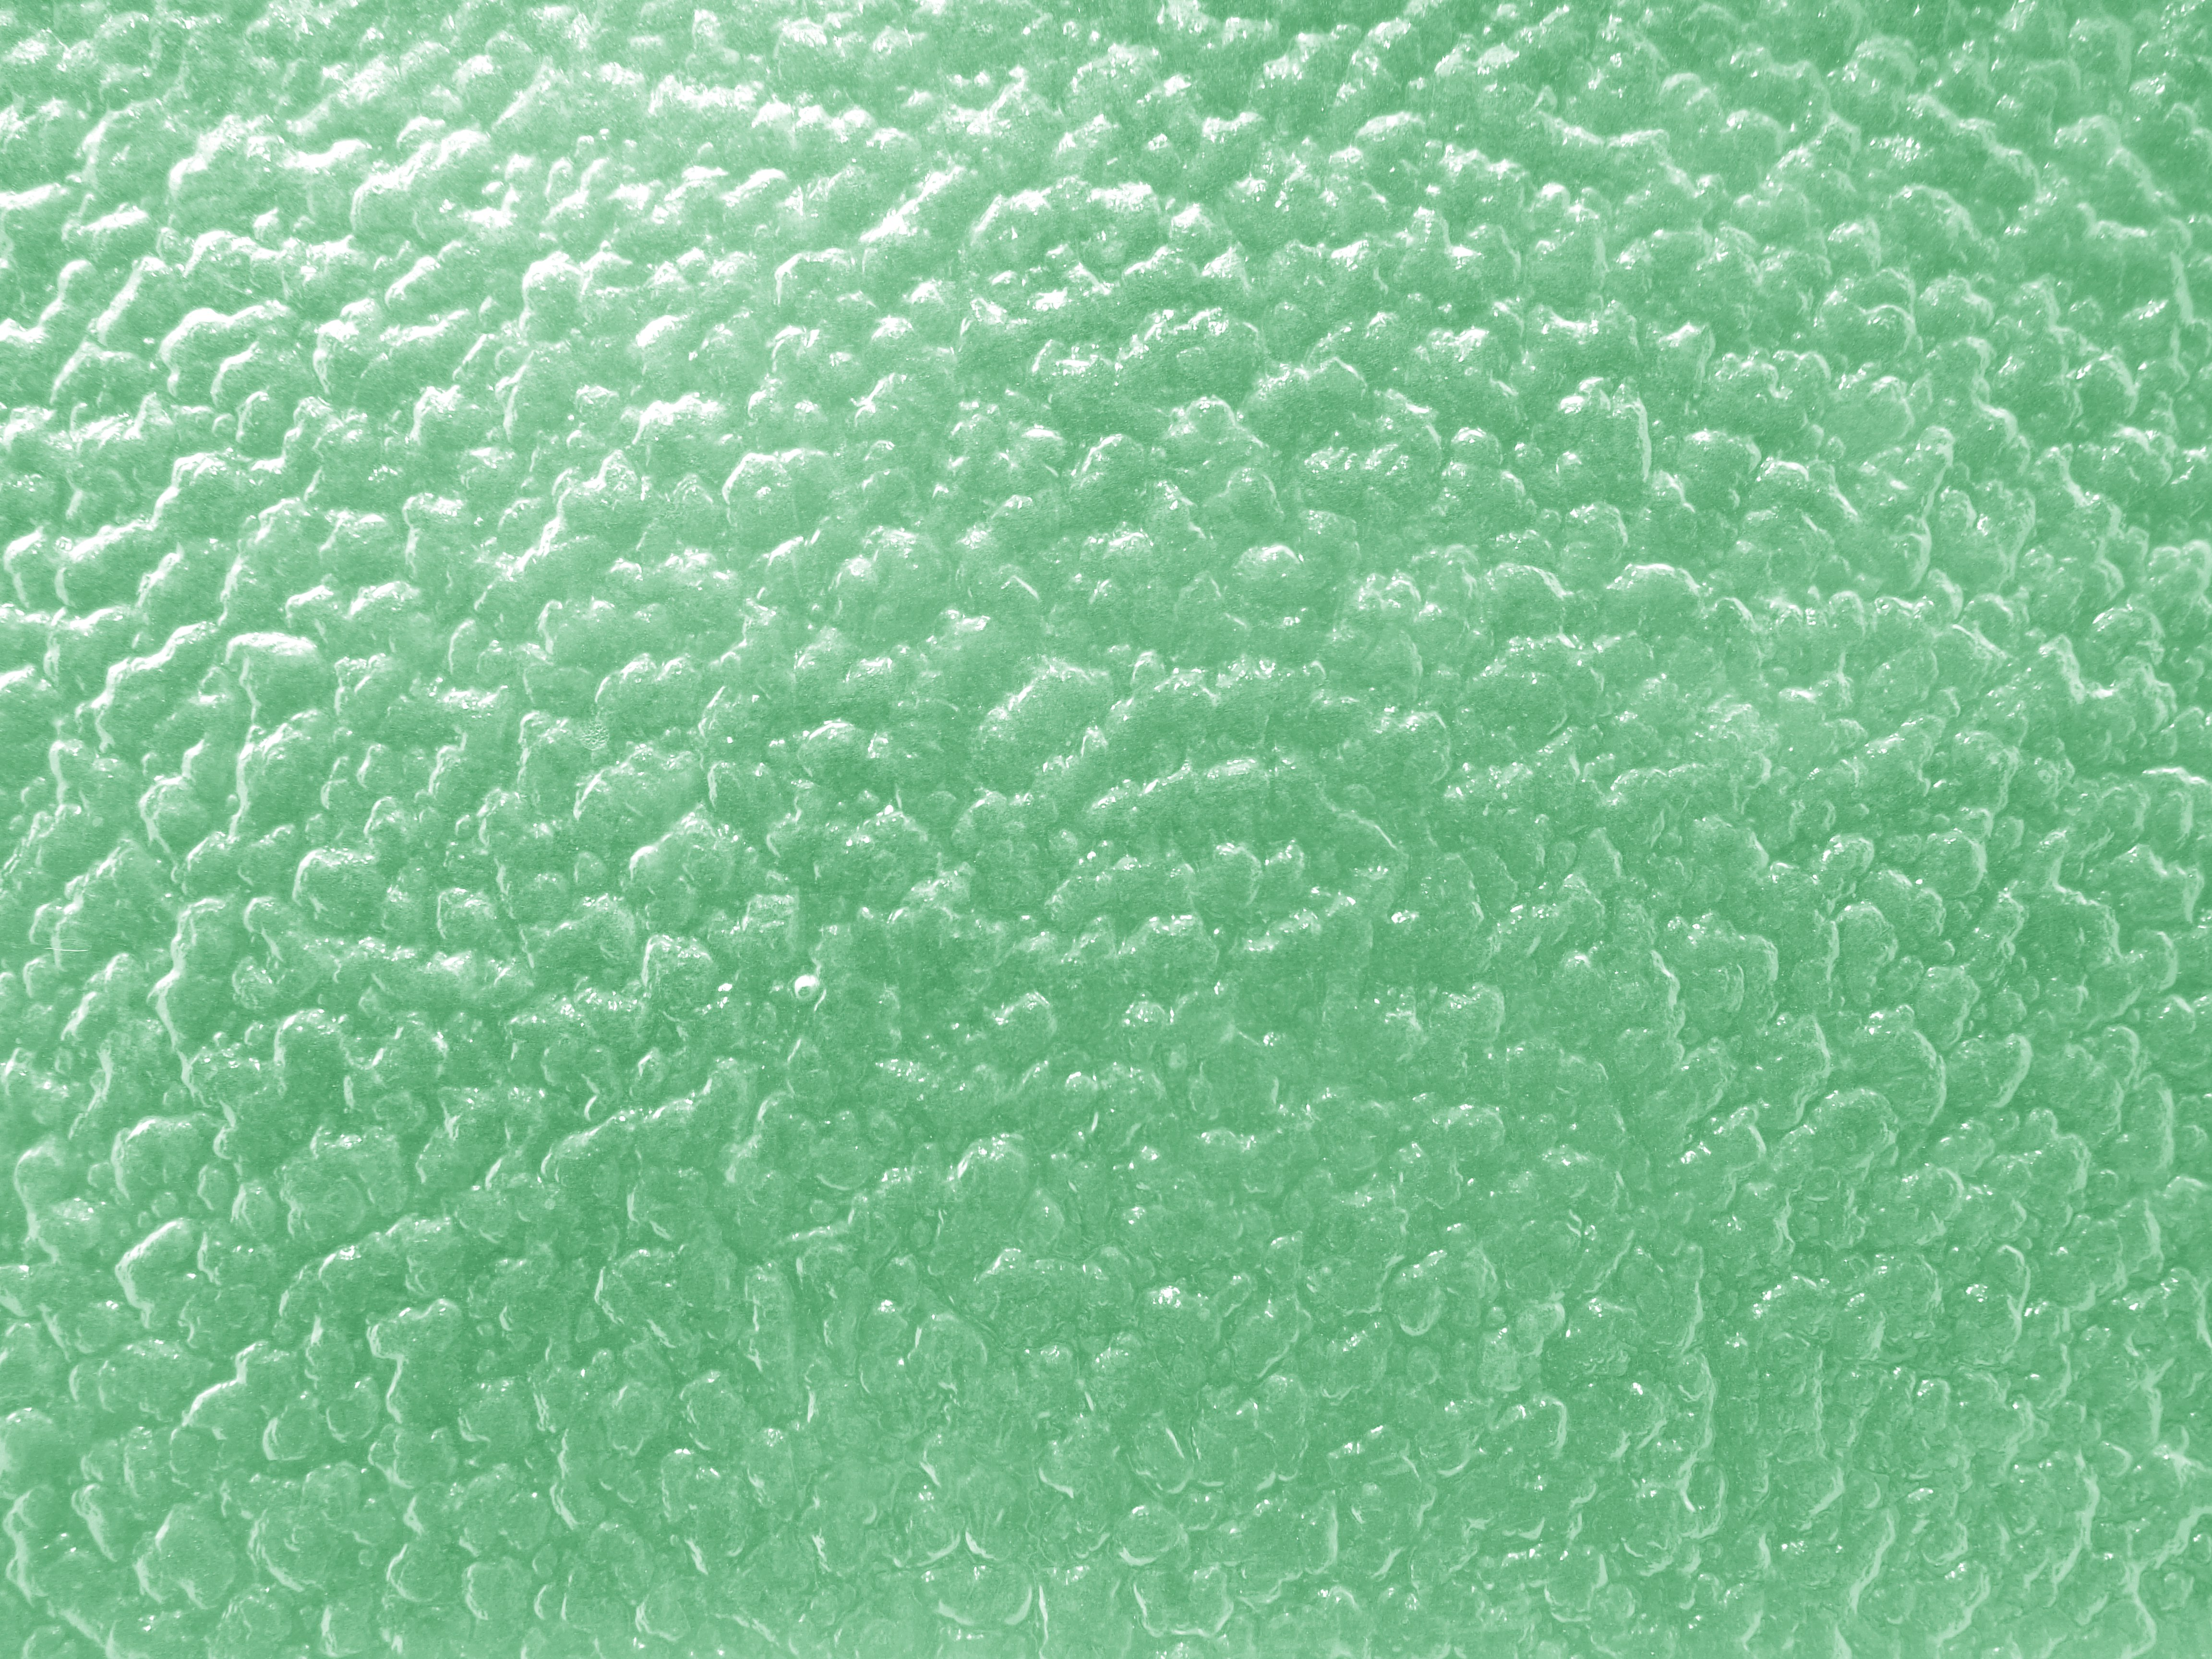 a606ca093f1 ... Wallpaper 2560x1600. View 0. Mint Green Textured Glass with Bumpy  Surface Picture Photograph 4608x3456